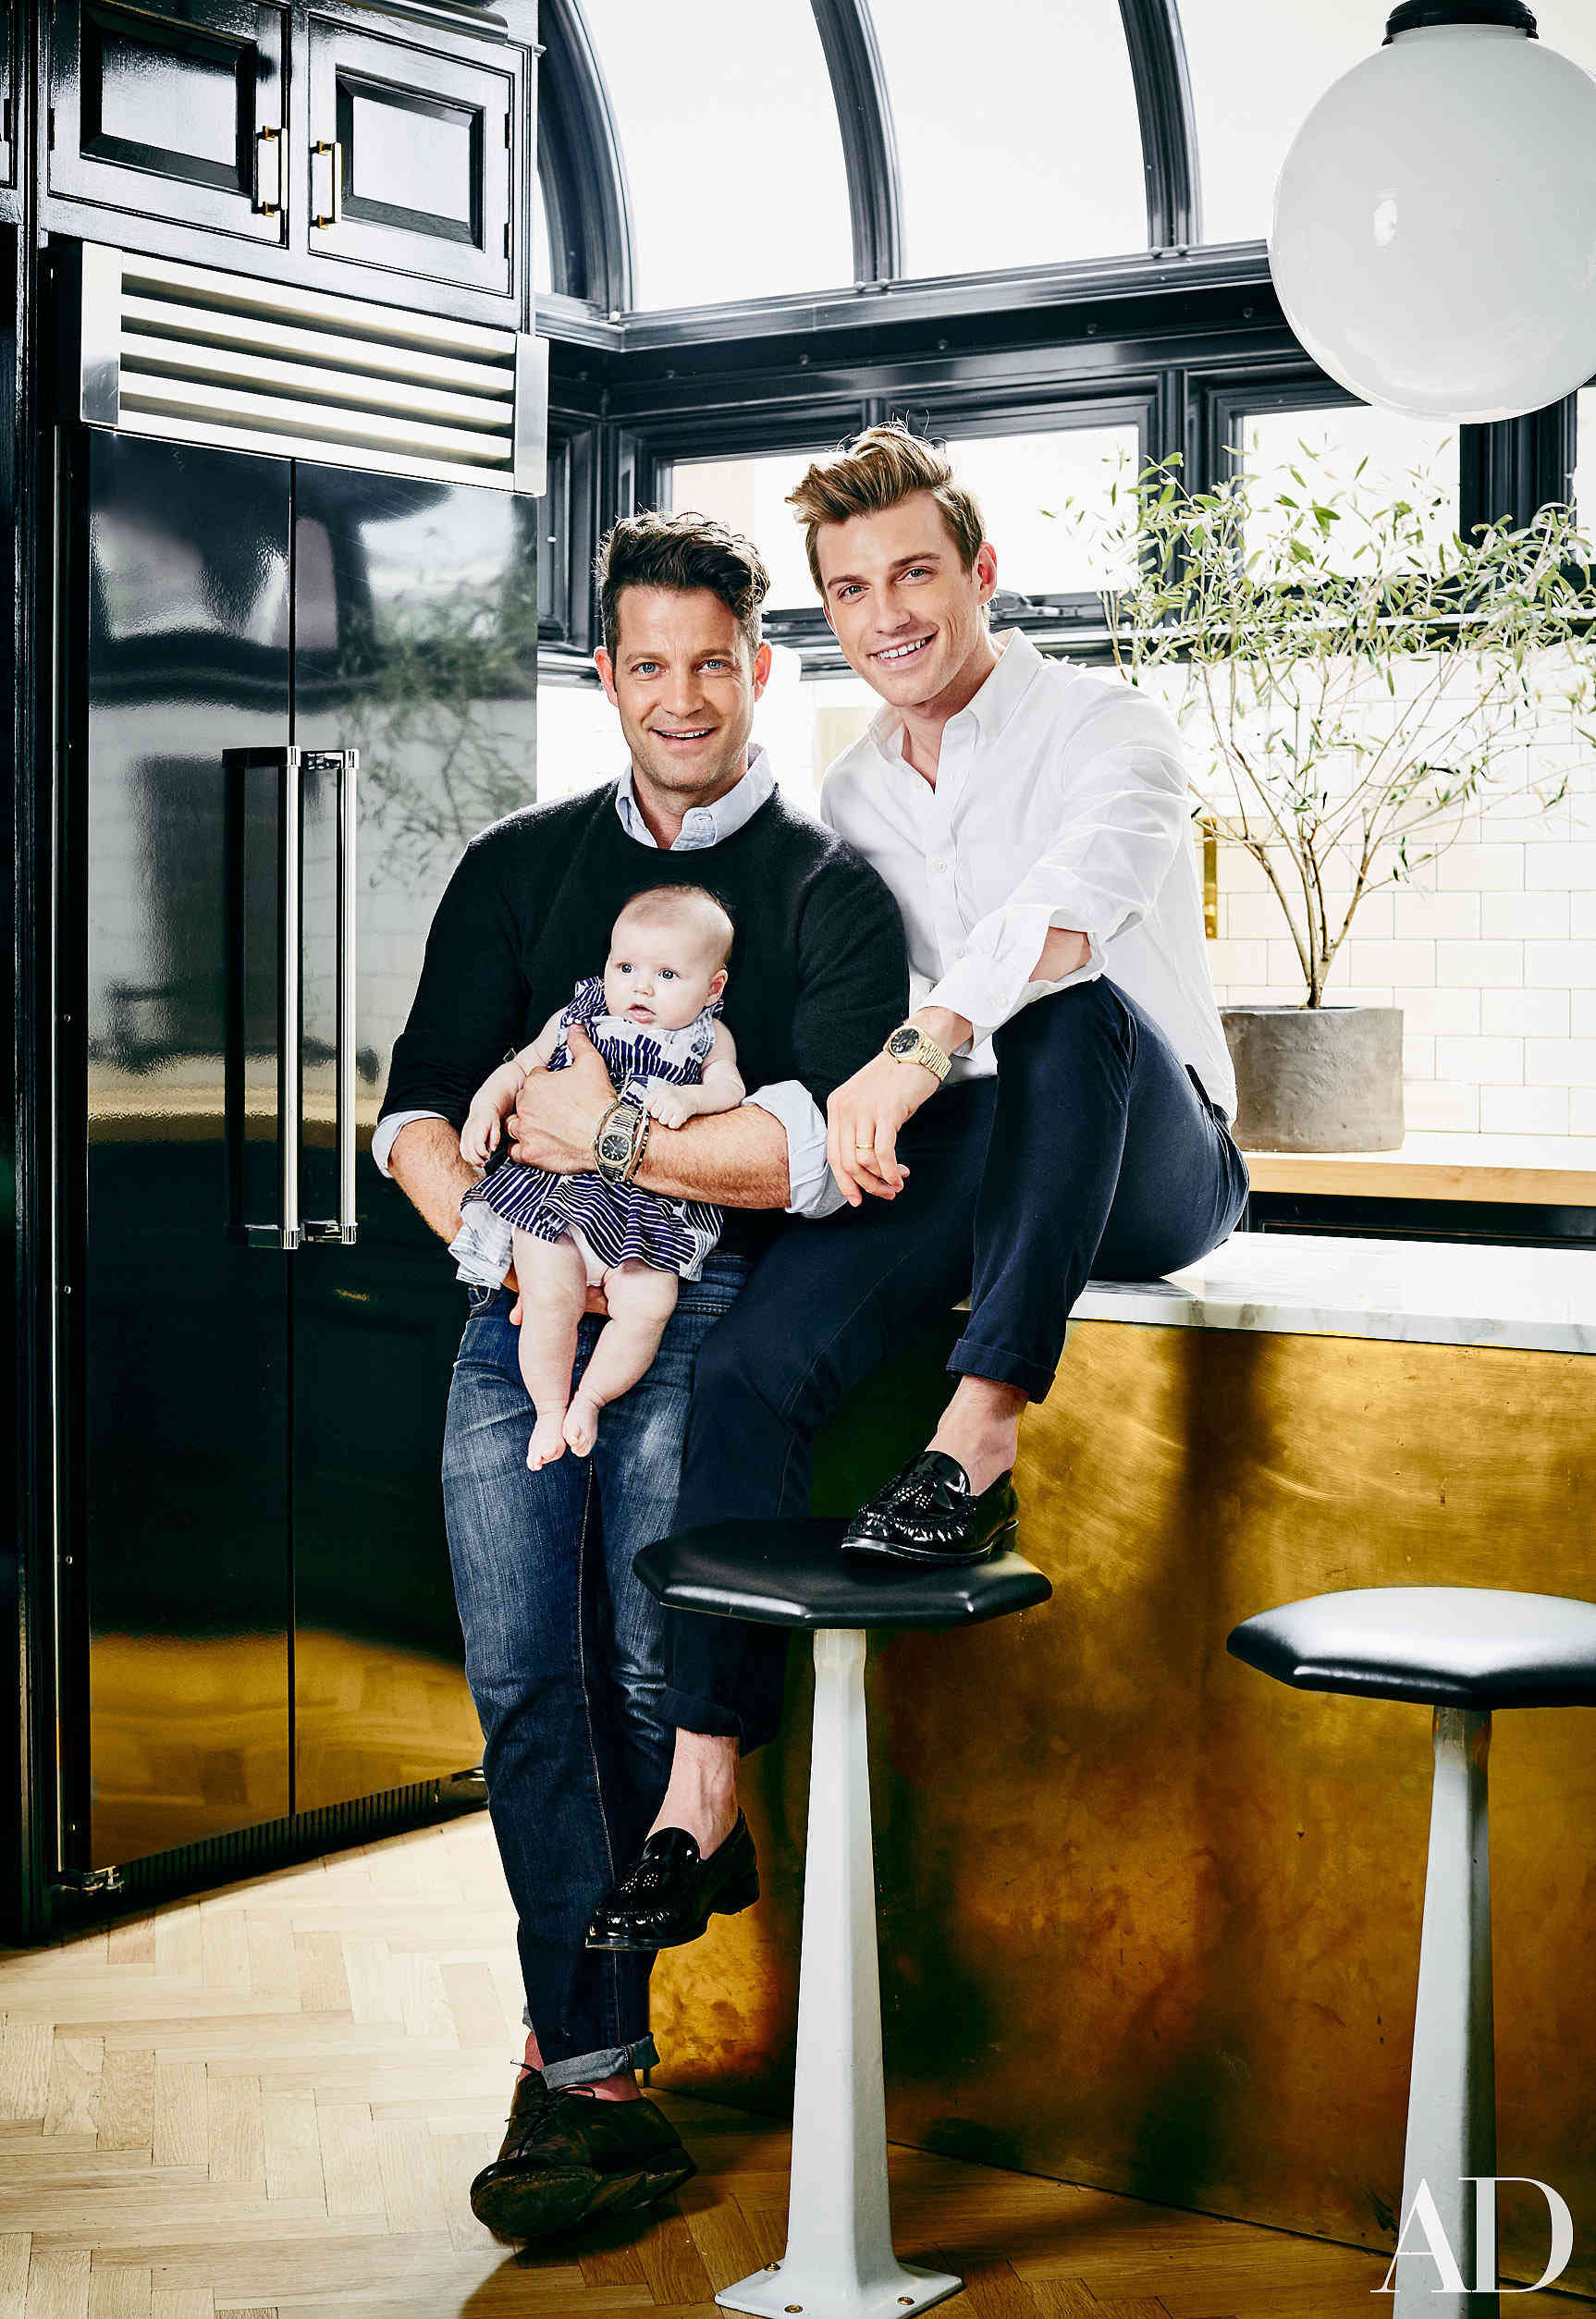 greenhouse kitchen - Designers Nate Berkus and Jeremiah Brent with their daughter Poppy in their renovated black and white NYC penthouse kitchen - AD via Atticmag